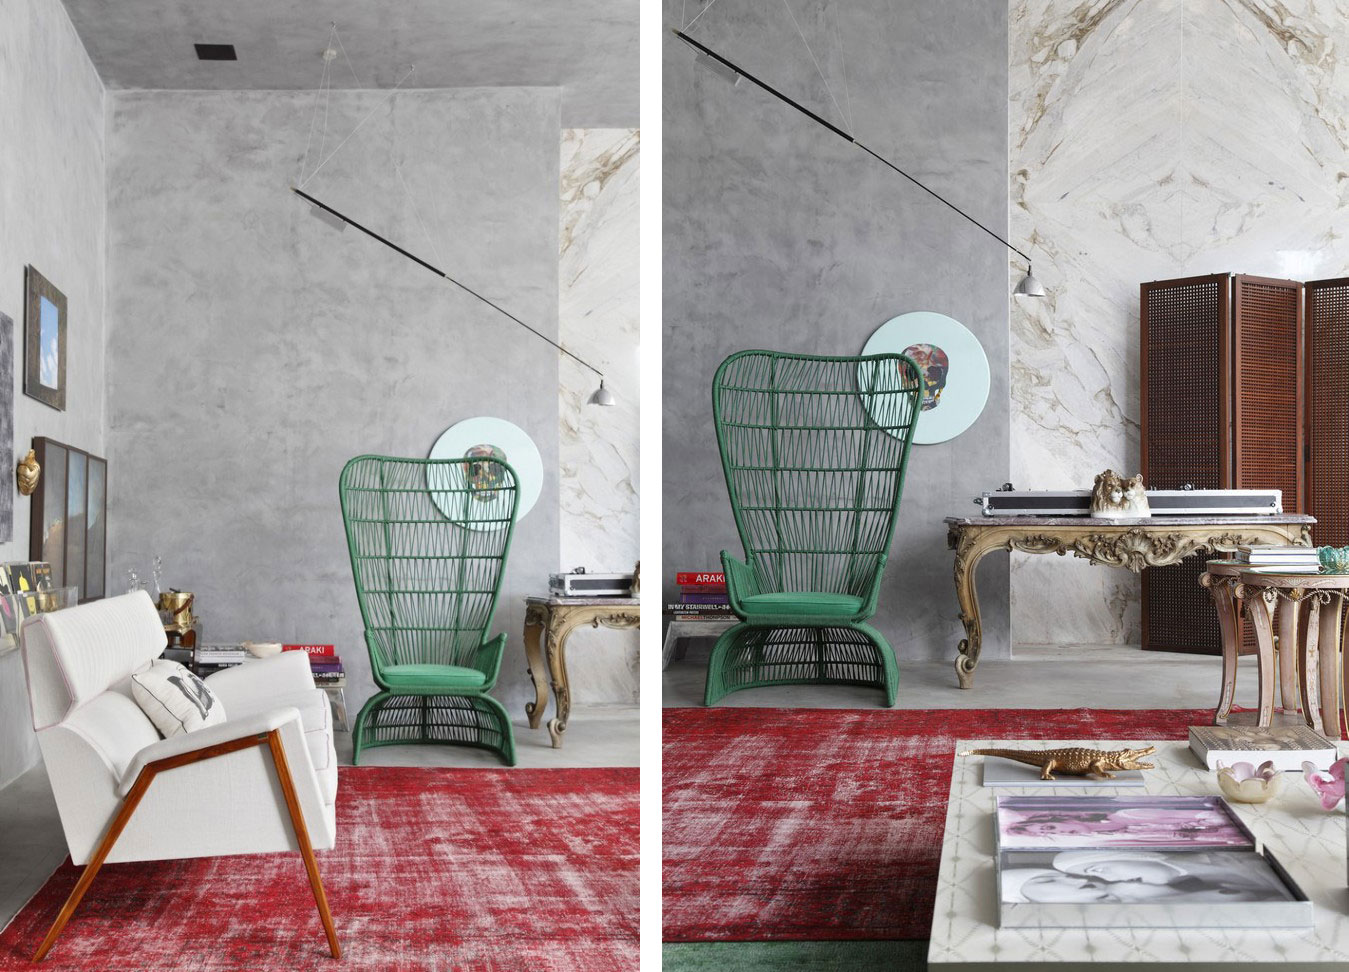 stylish-decorative-and-vintage-living-room-furniture-interior-design-ideas-with-red-carpet-tile-white-sofa-and-green-chair-with-high-back-ideas